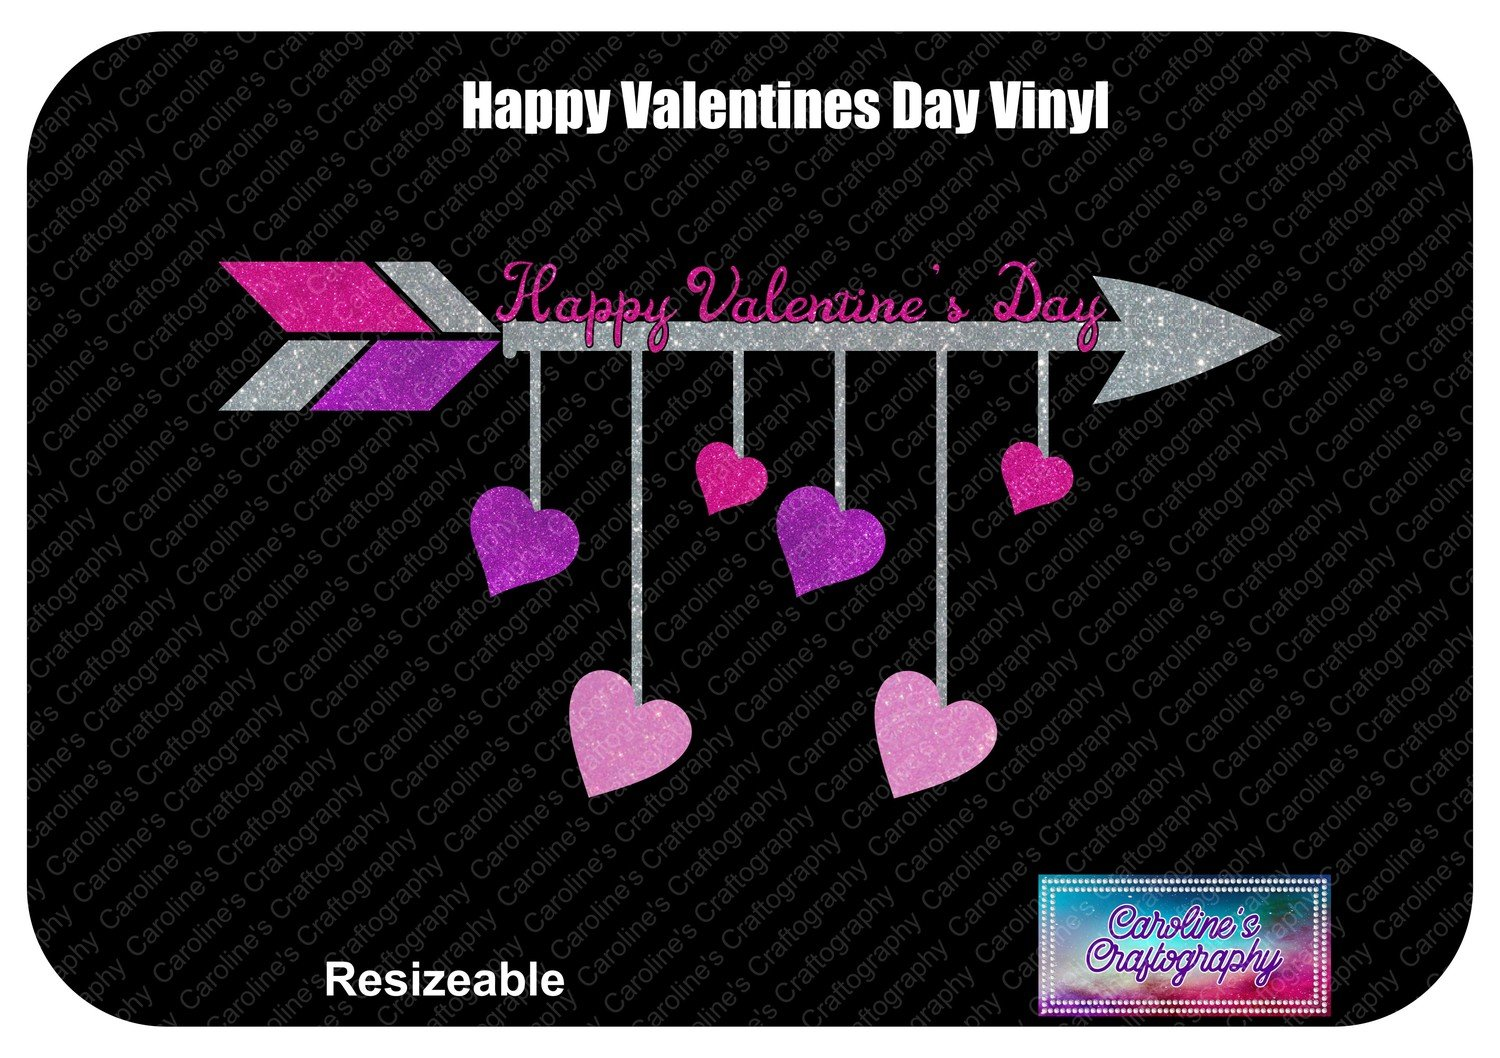 Happy Valentine's Day Vinyl